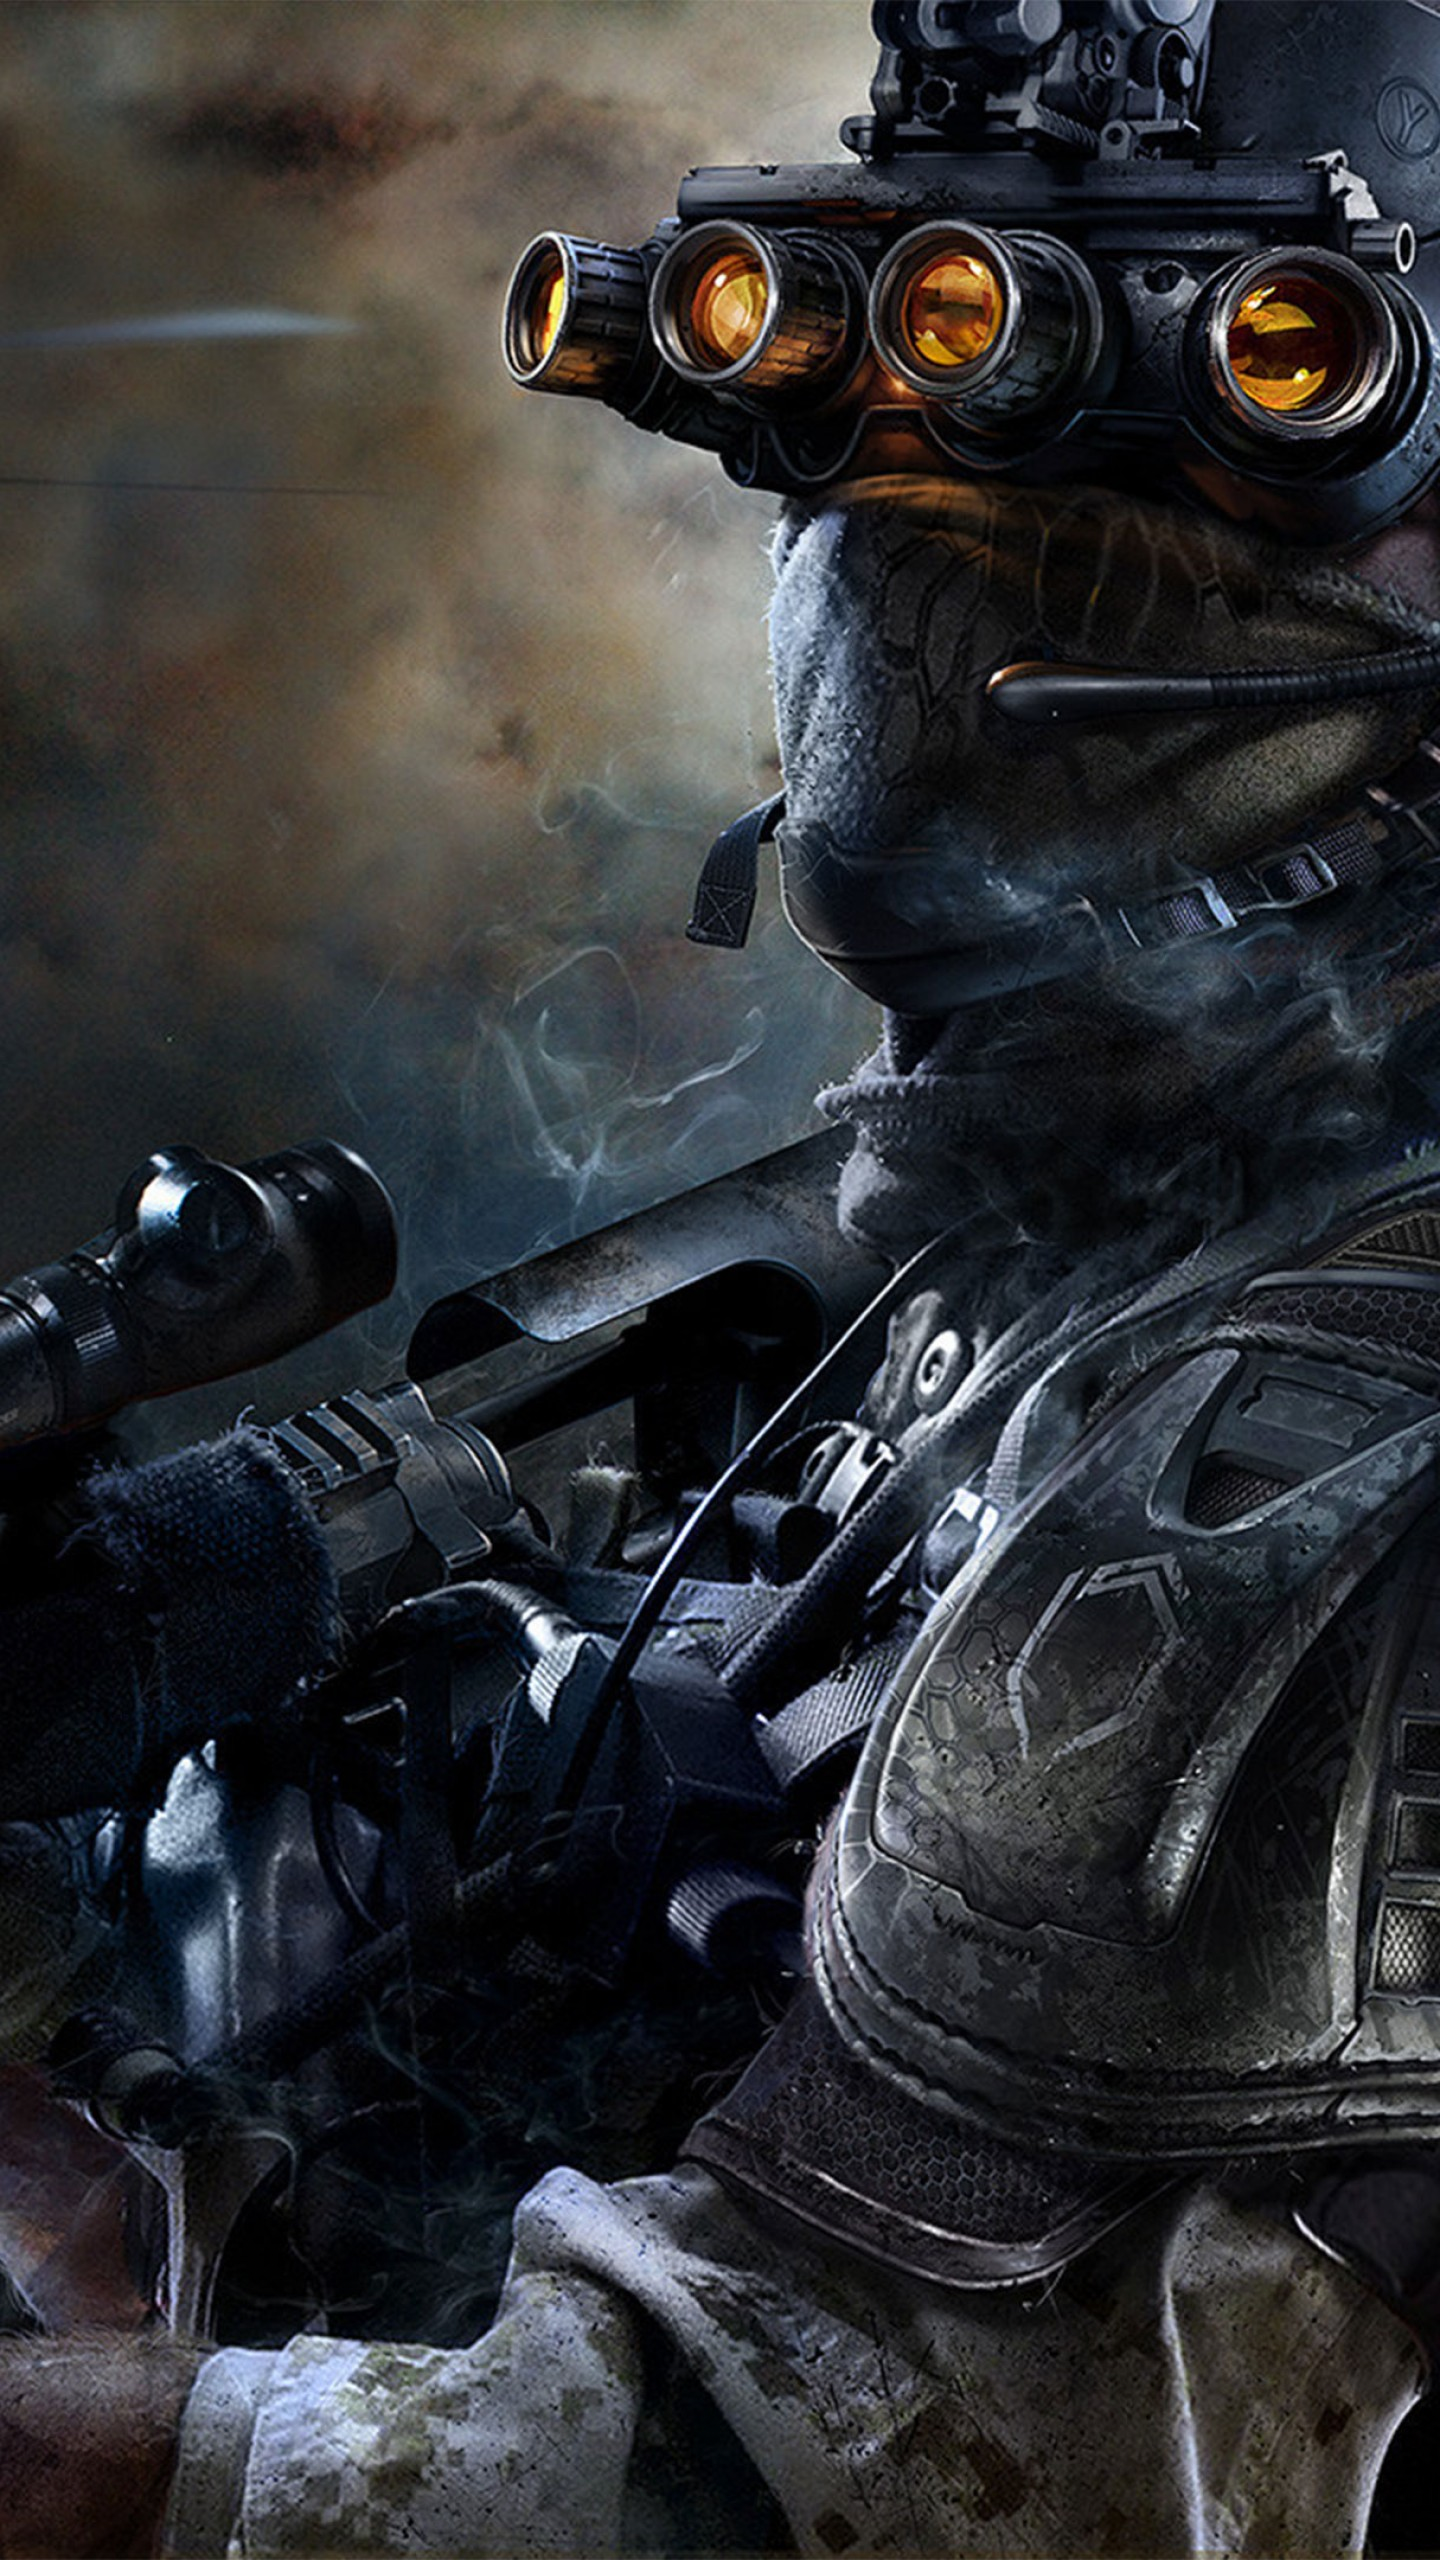 Hd Wallpapers For Pc With Quotes Wallpaper Sniper Ghost Warrior 3 Shooter Best Games